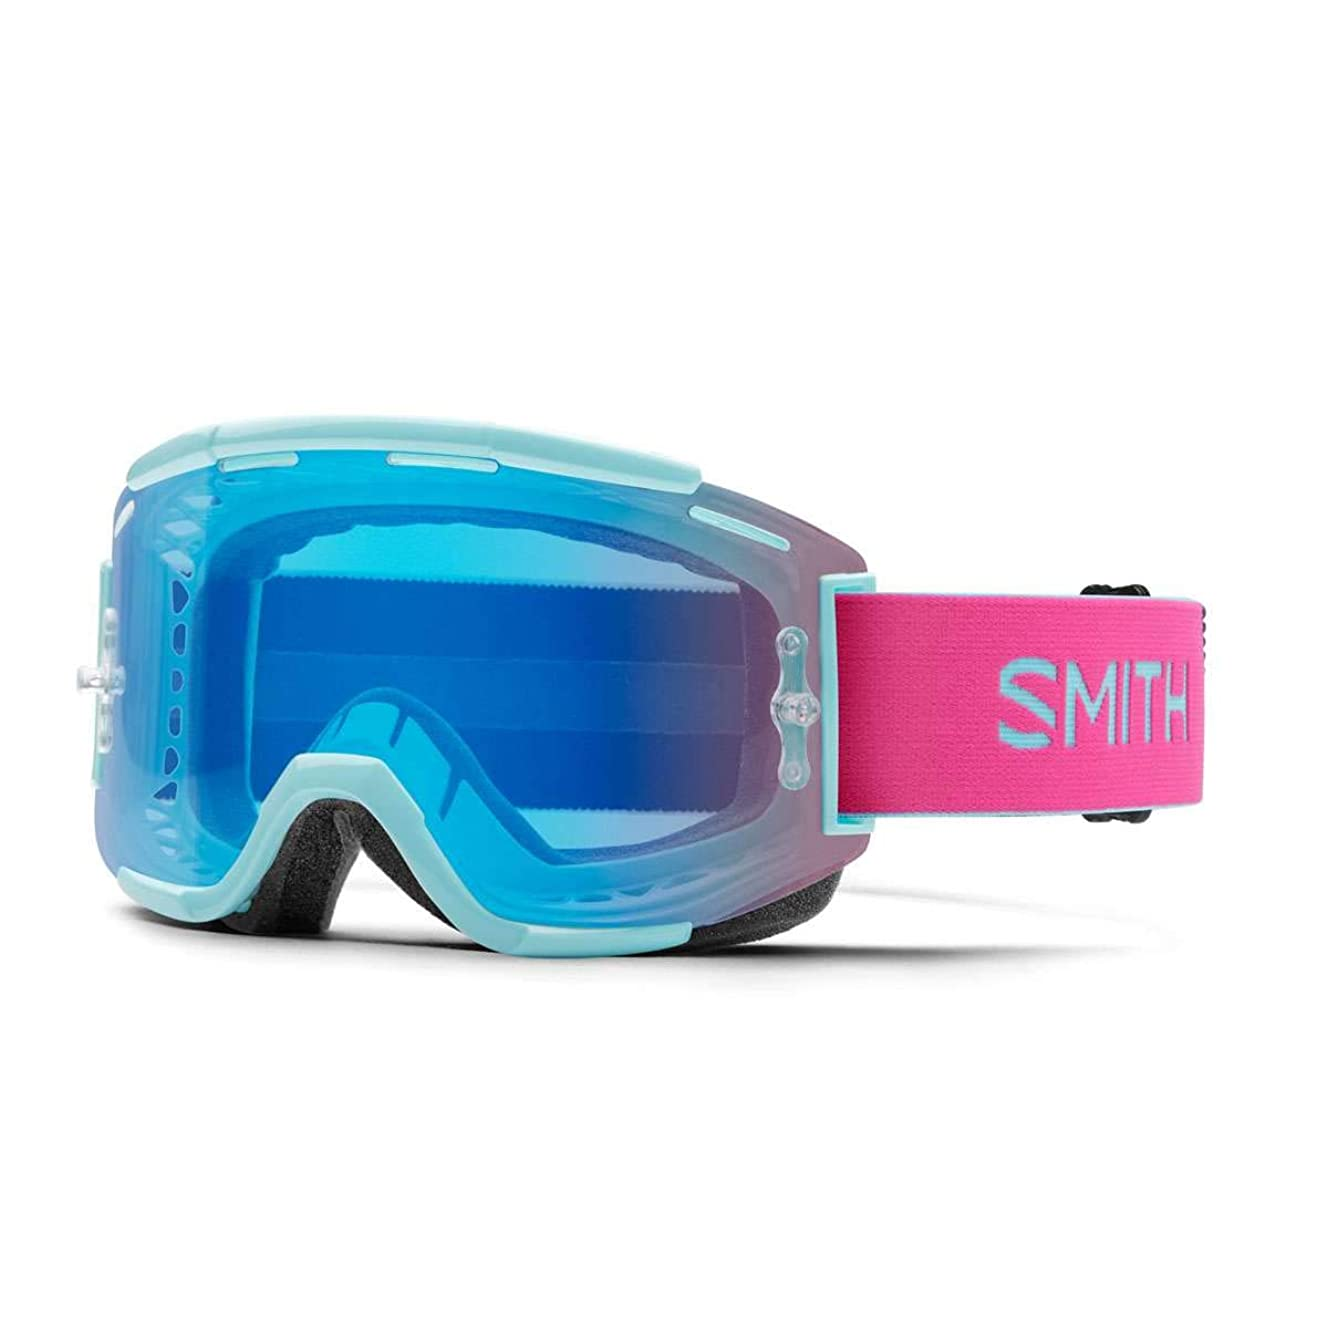 Smith Optics Squad Adult MTB Off-Road Cycling Goggles - Iceberg/Peony/ChromaPop Contrast Rose/One Size